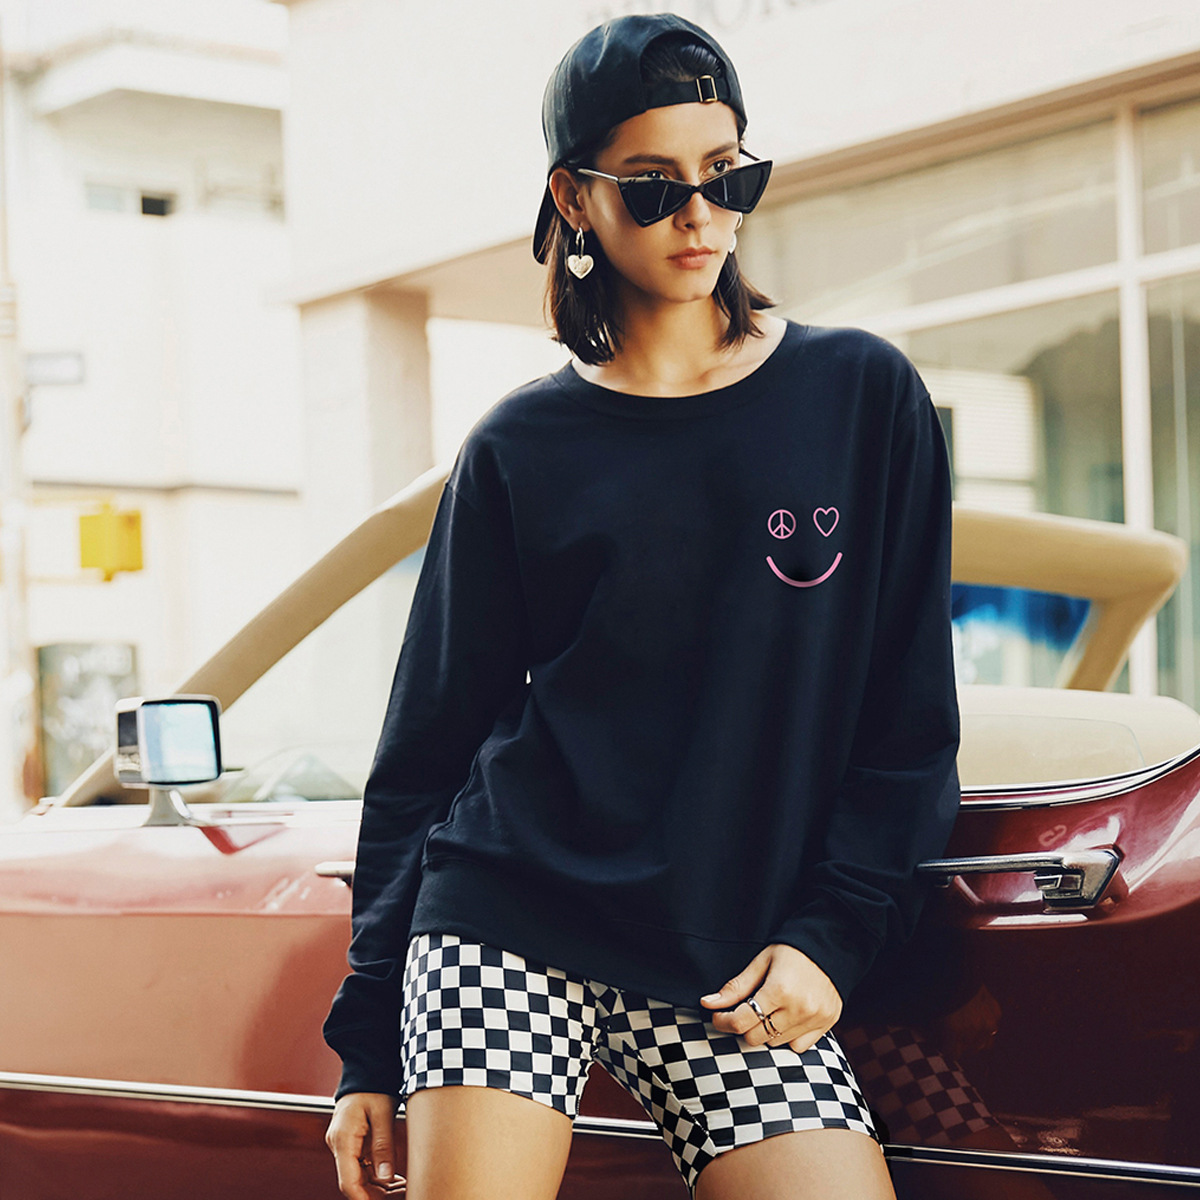 new autumn and winter women's round neck long sleeve street casual sweater wholesale NSSN308